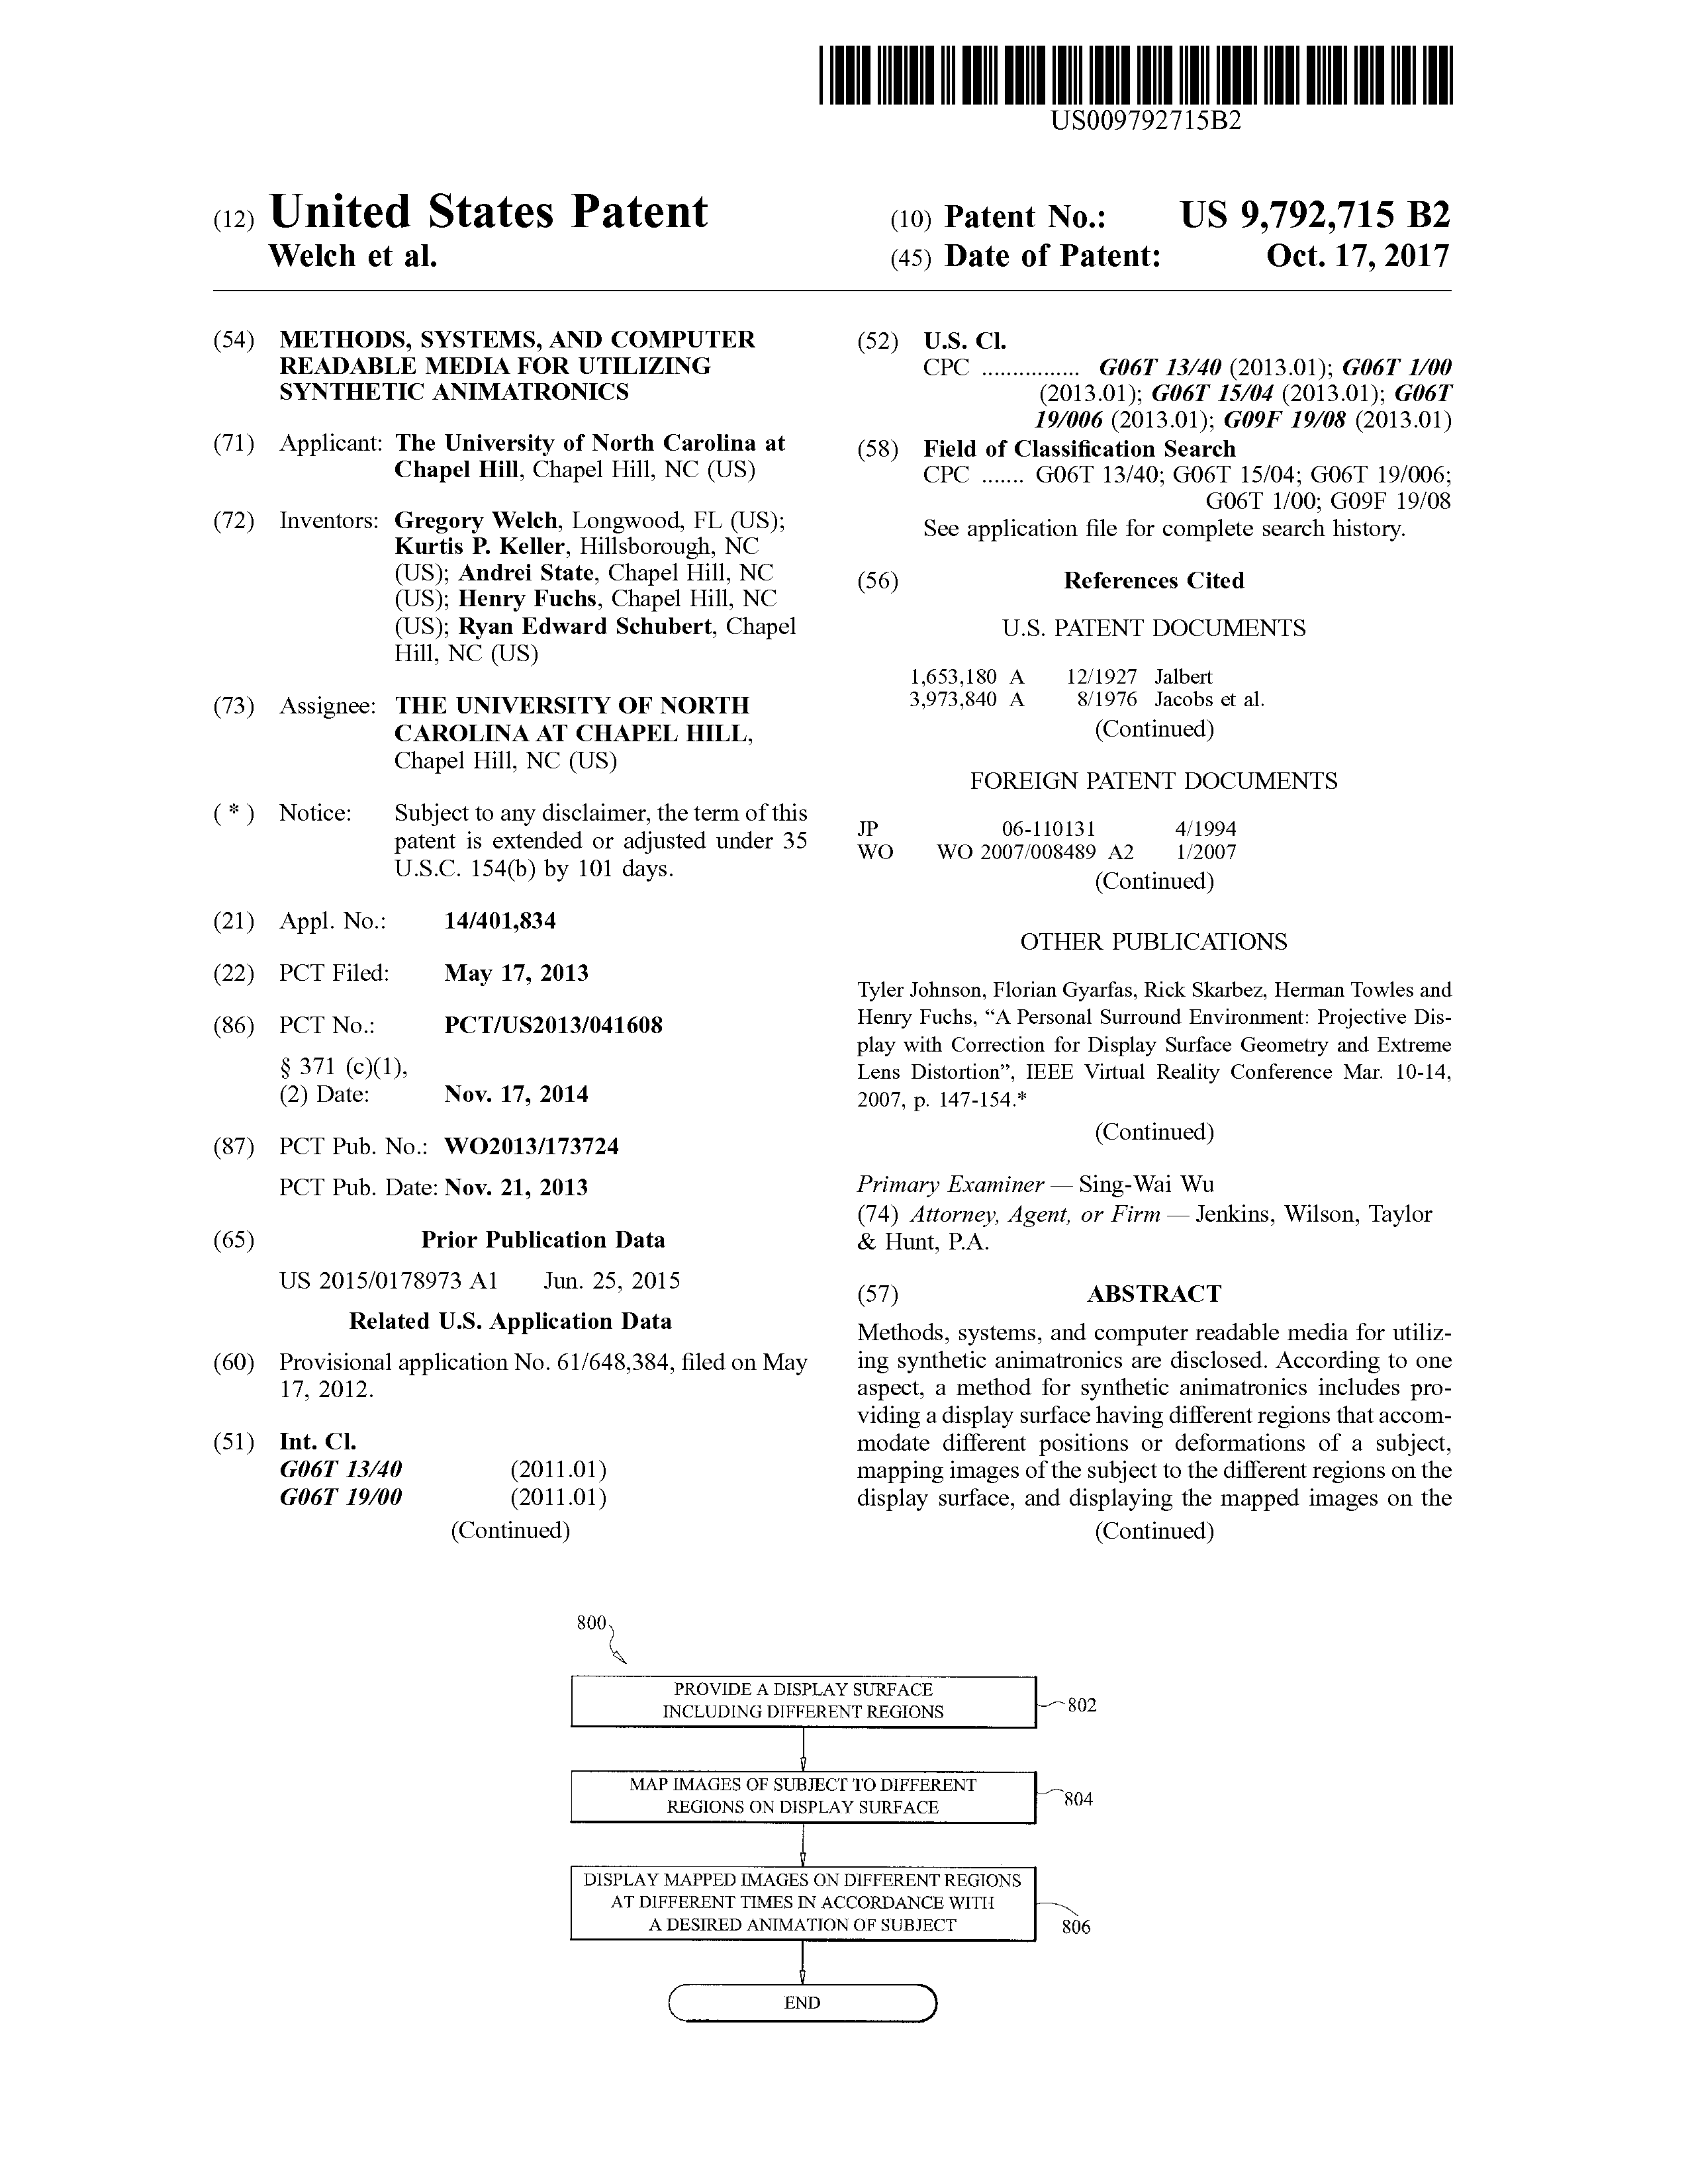 Methods, systems, and computer readable media for utilizing synthetic animatronics